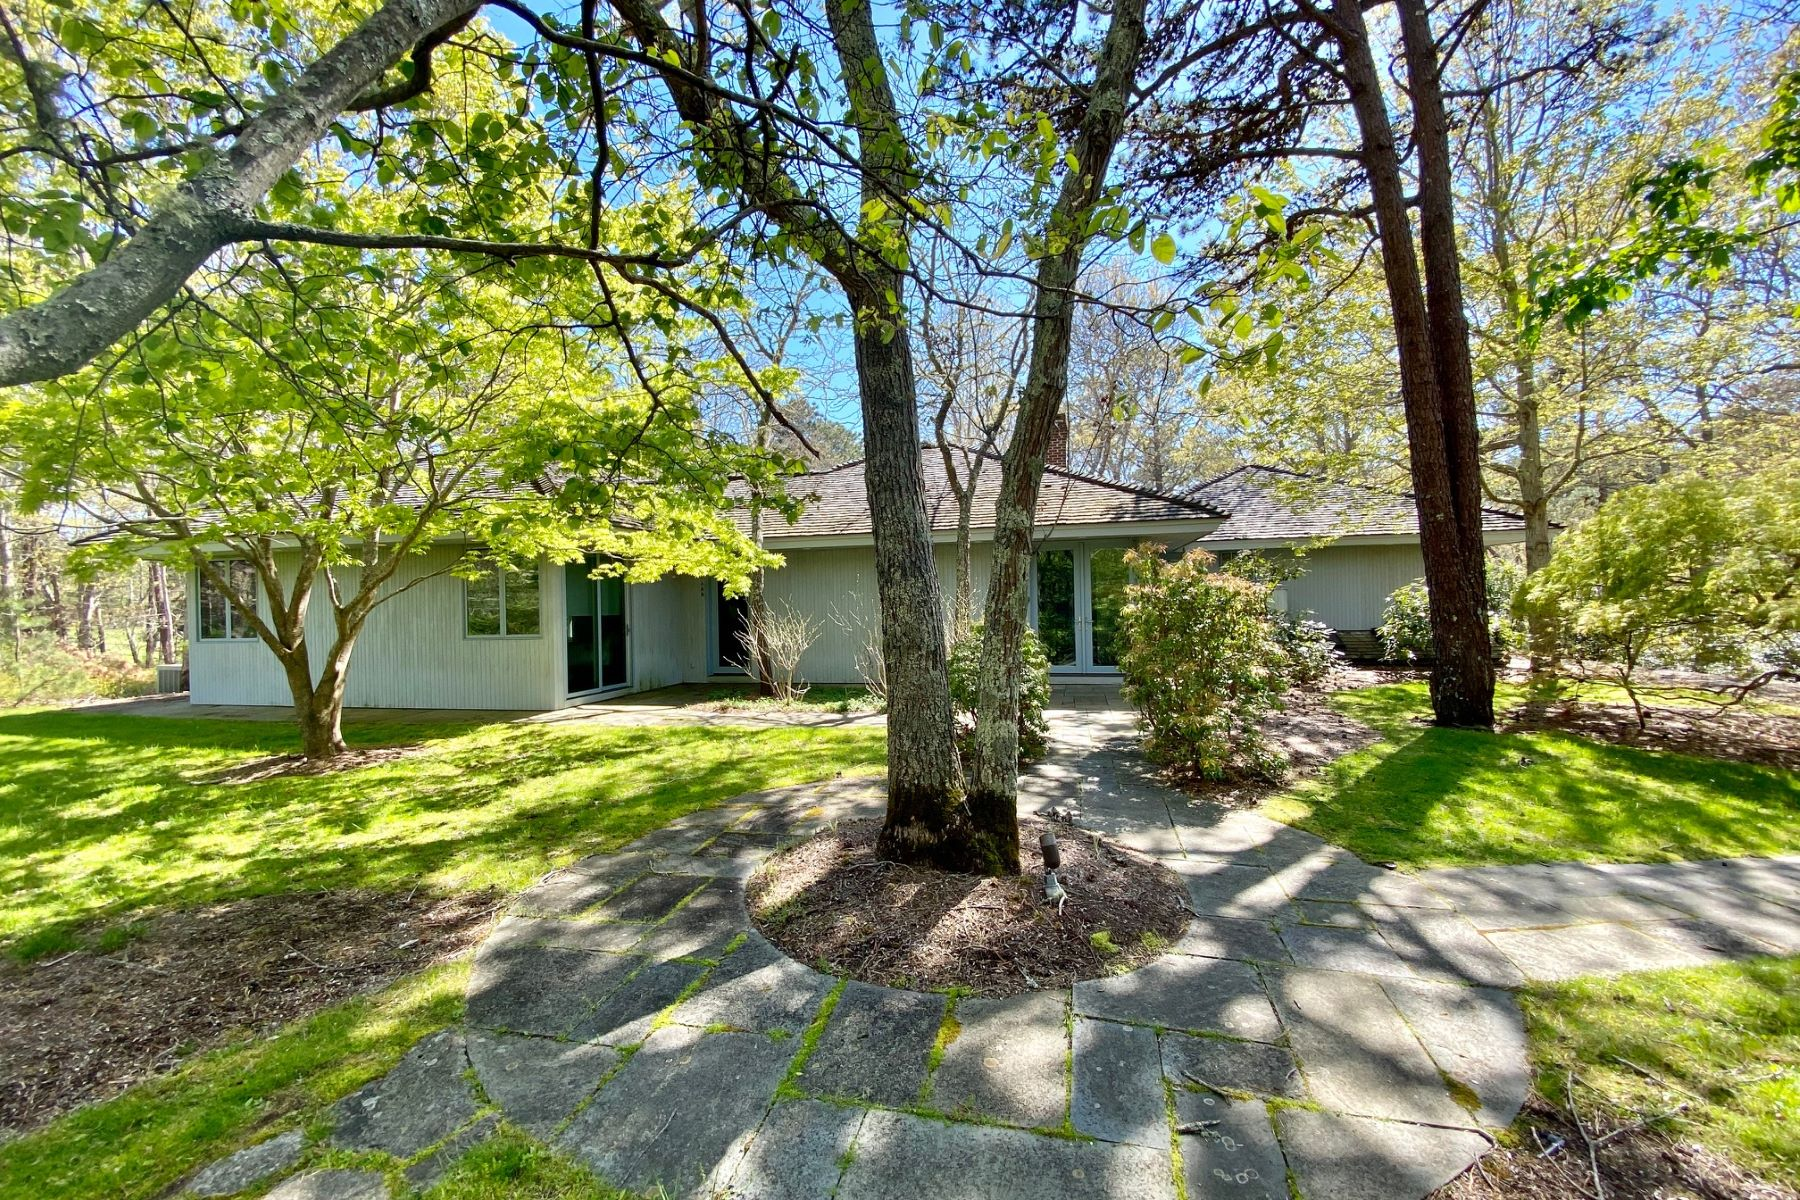 Single Family Homes for Active at Contemporary home in Mink Meadows 135 Bigelow Road Vineyard Haven, Massachusetts 02568 United States